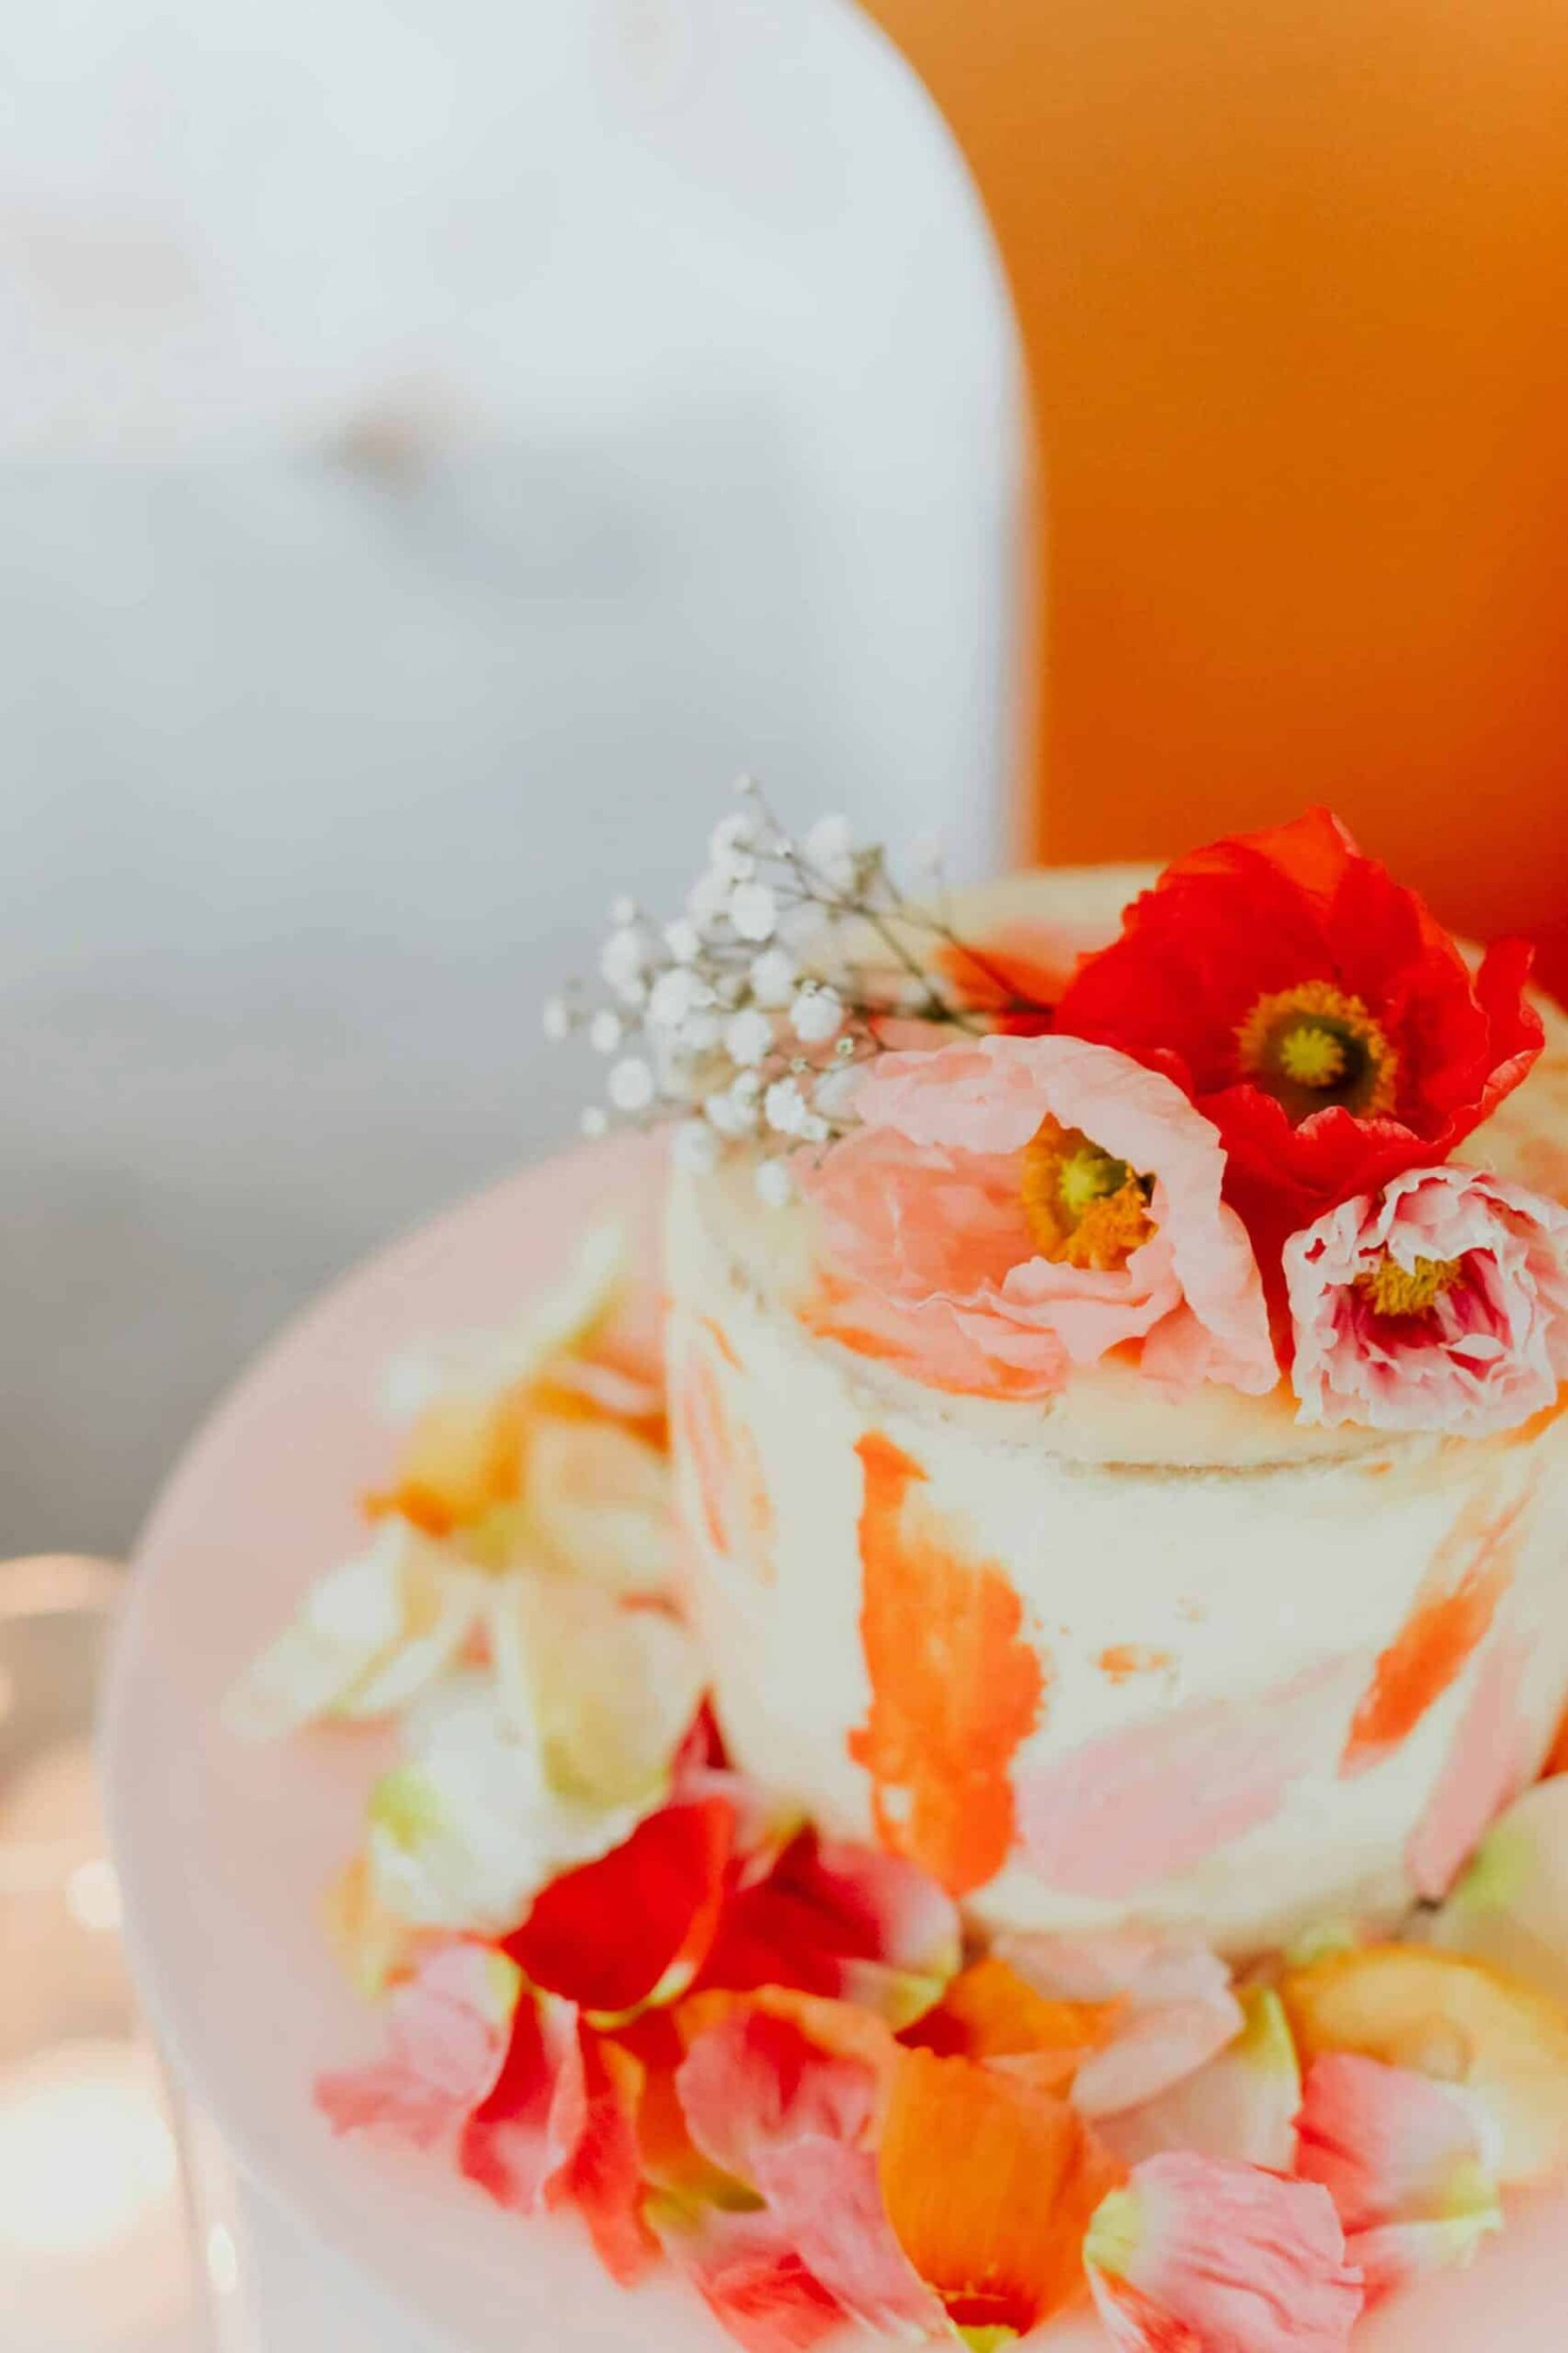 Matisse-inspired wedding inspiration at The Button Factory in Melbourne